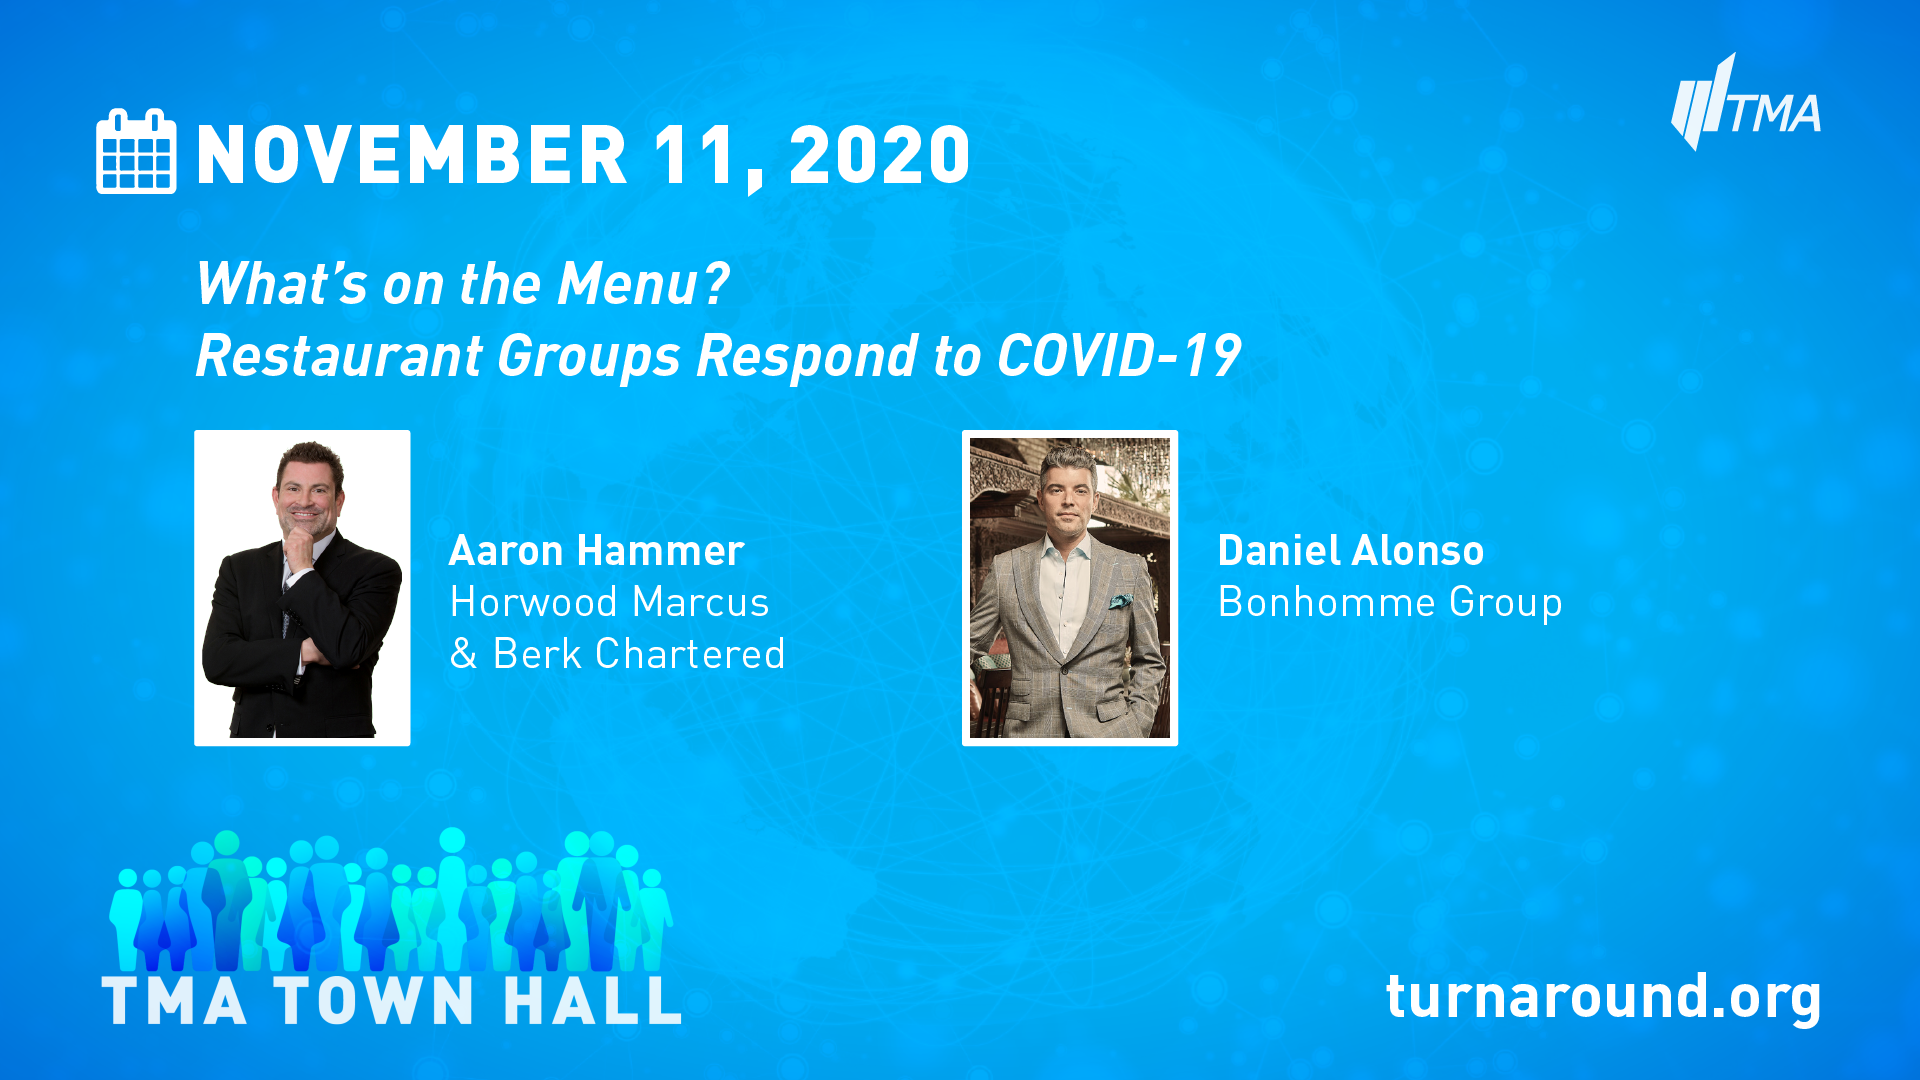 TMA Town Hall for November 11, 2020